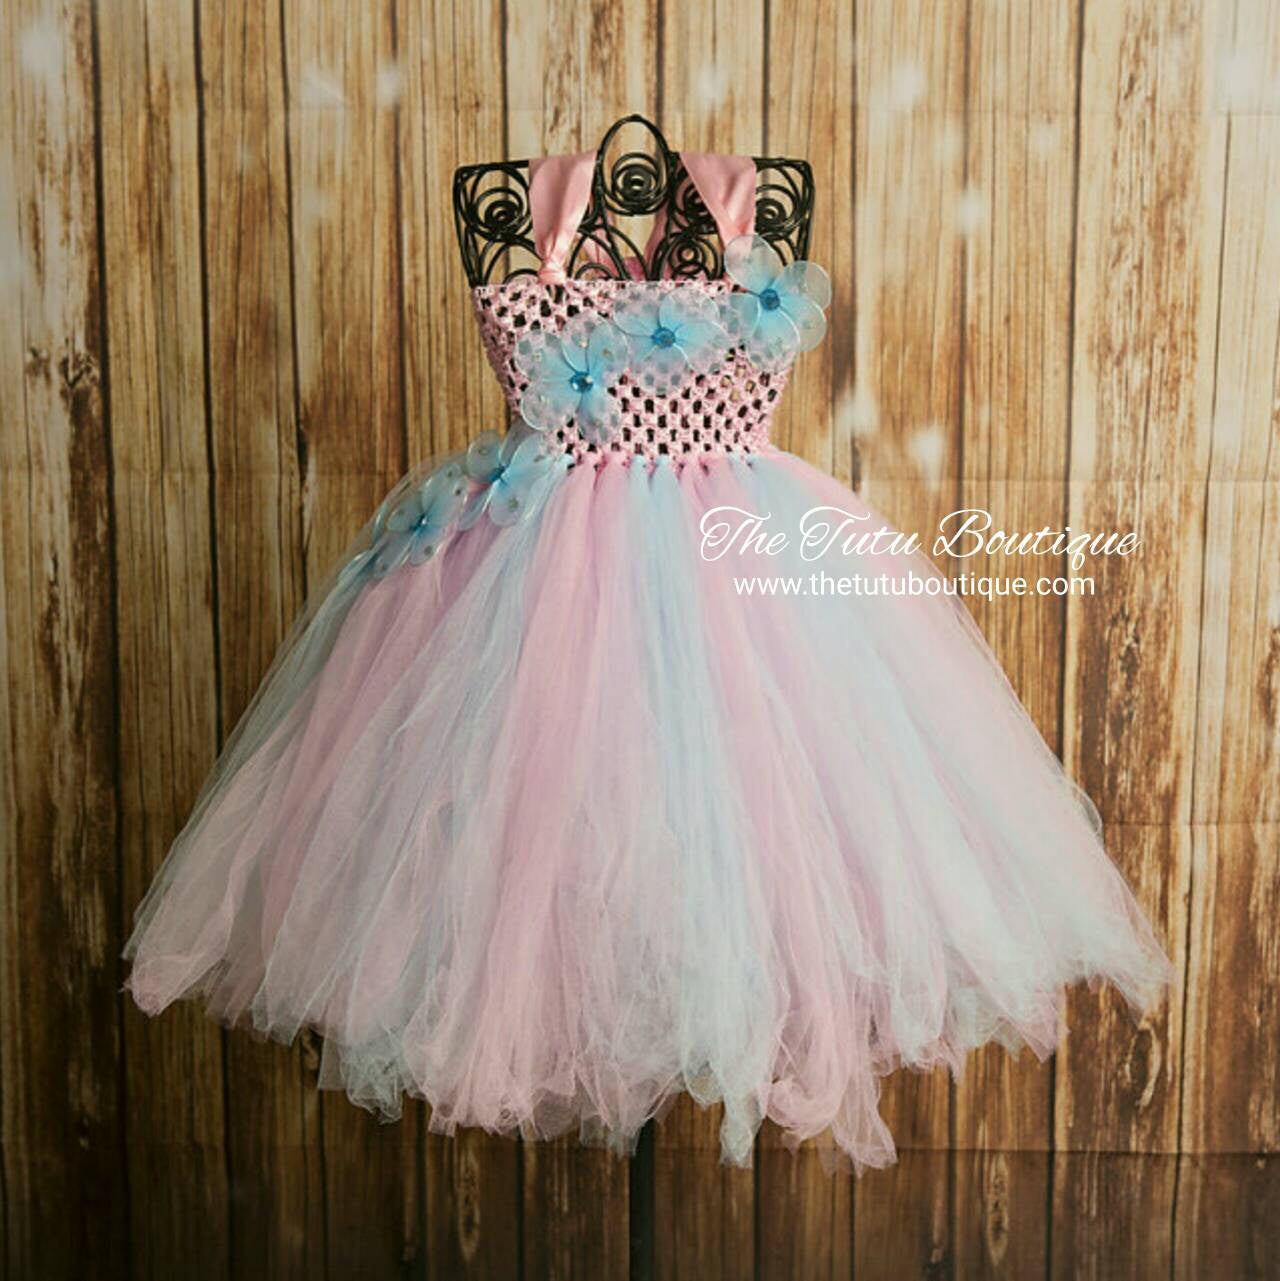 Cotton Candy Tutu, Flower Girl Tutu Dress, Wedding, Cute Dress up ...